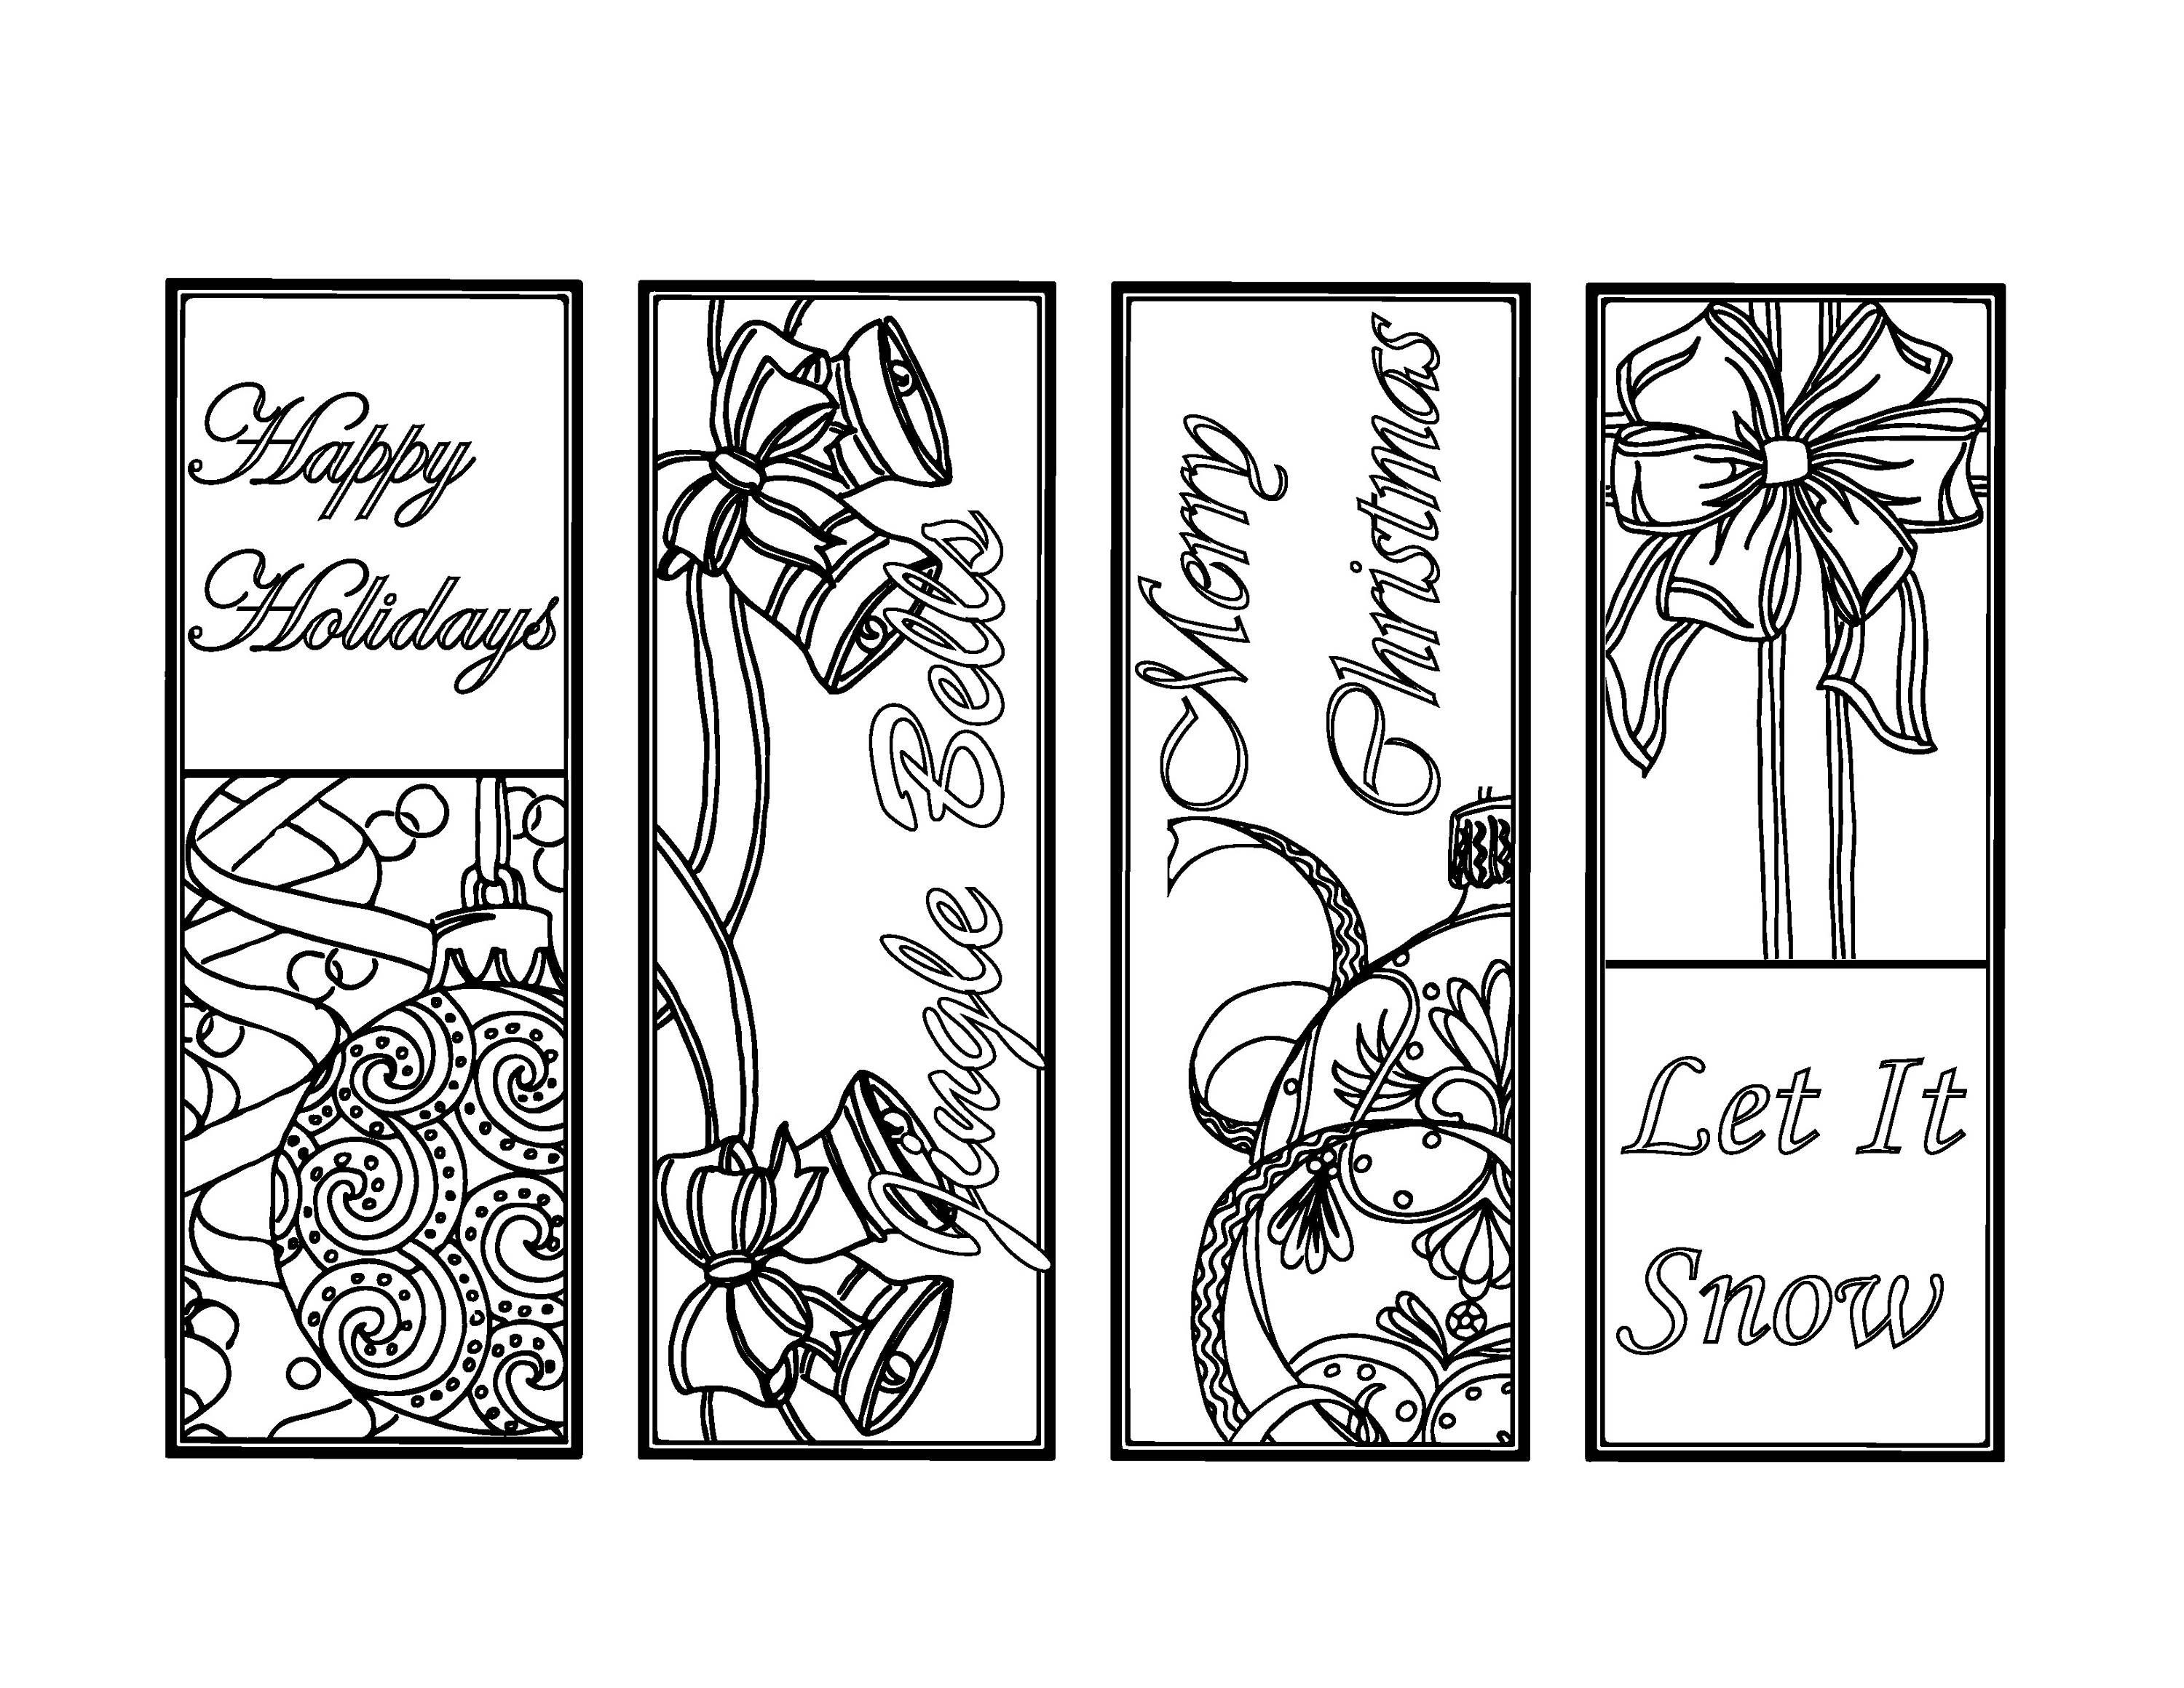 Christmas Coloring Bookmarks Plus Colored Items. Image 0. 9 - Free Printable Christmas Bookmarks To Color